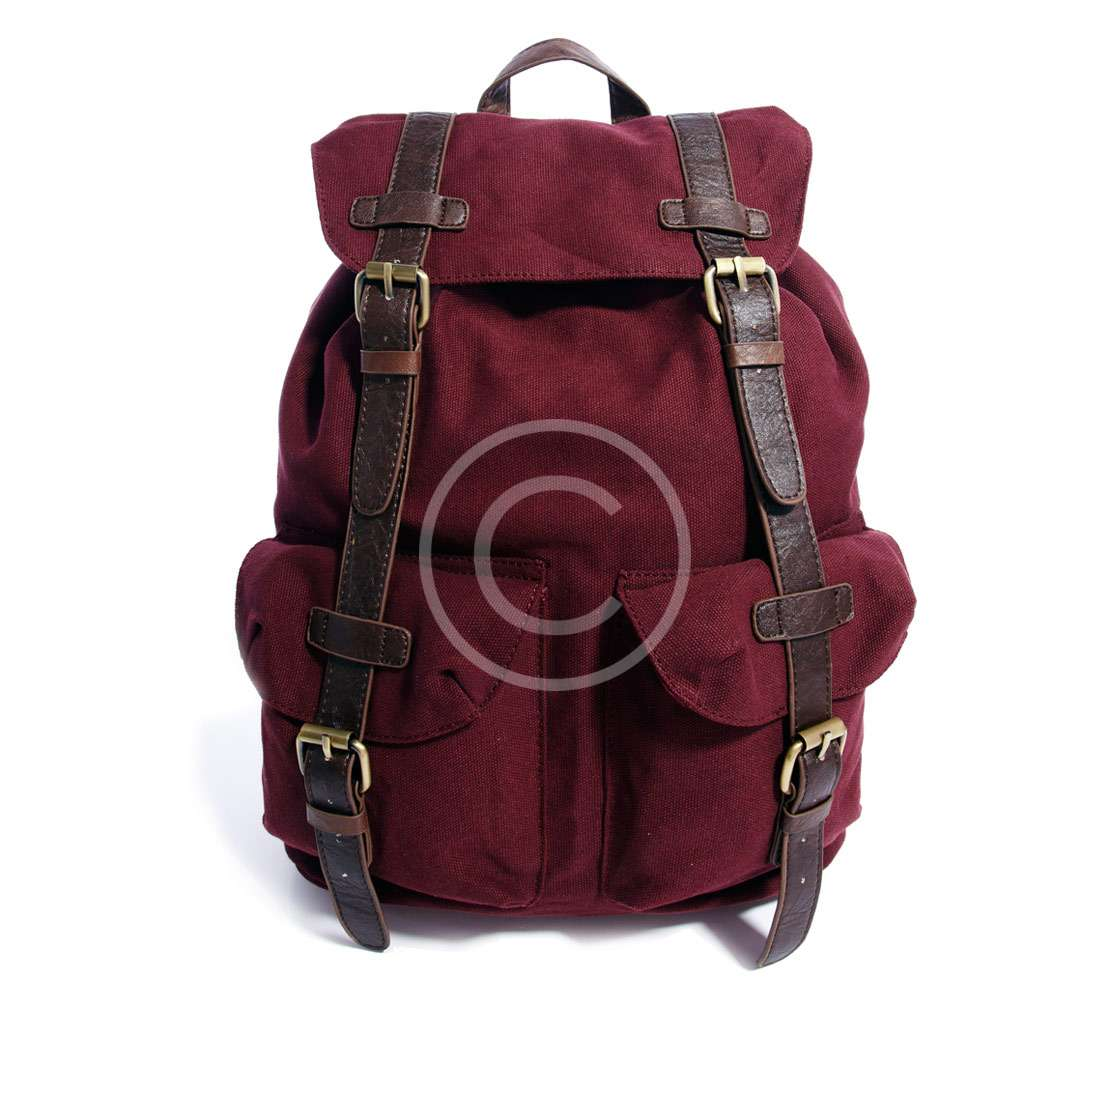 Backpack-with-Contrast-Straps-1.jpg